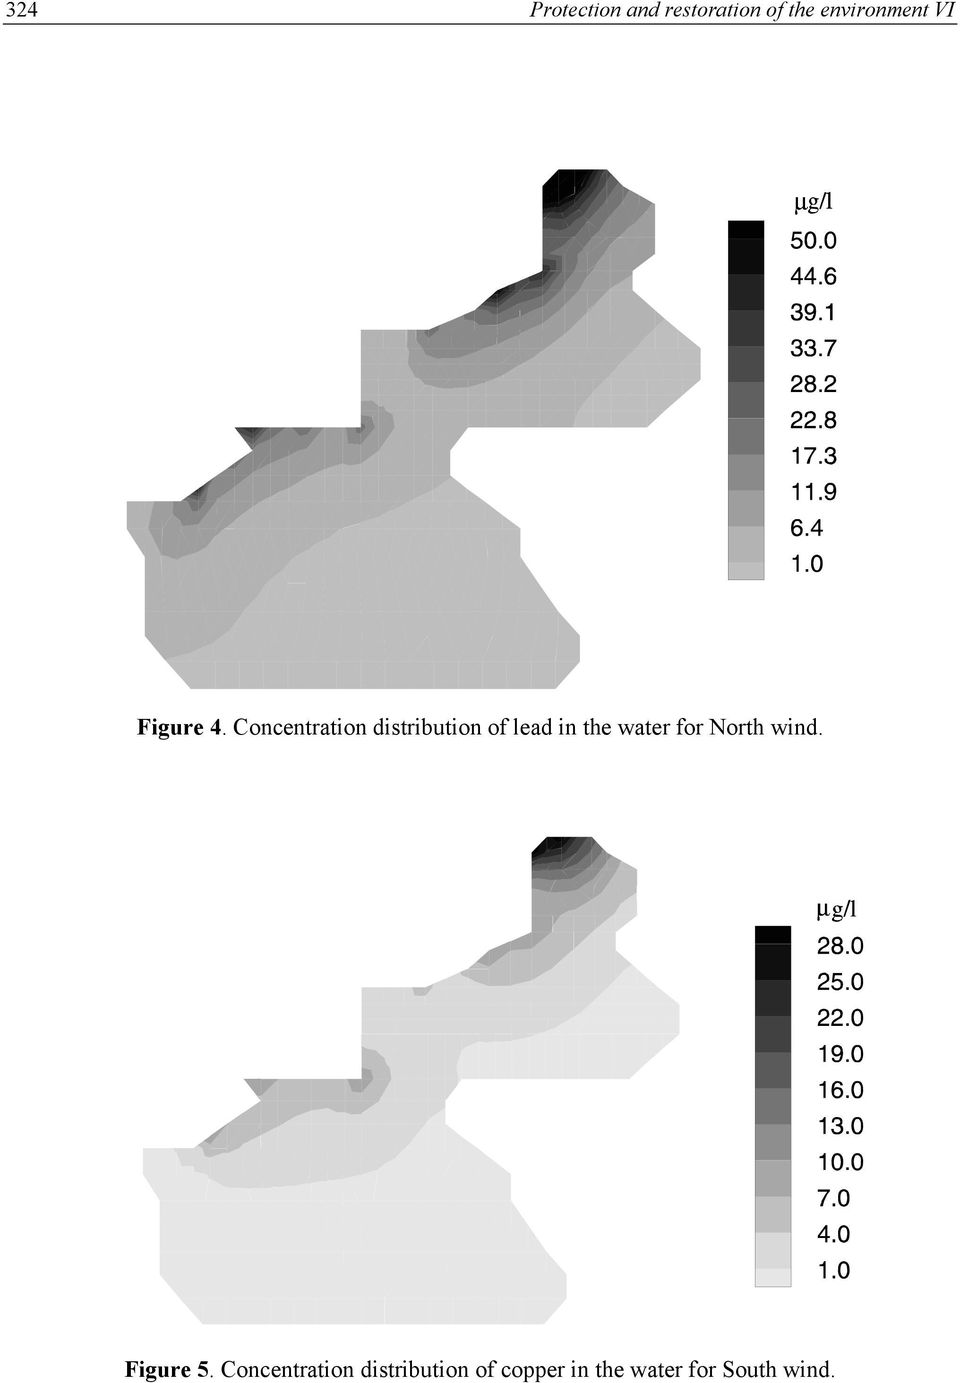 Concentration distribution of lead in the water